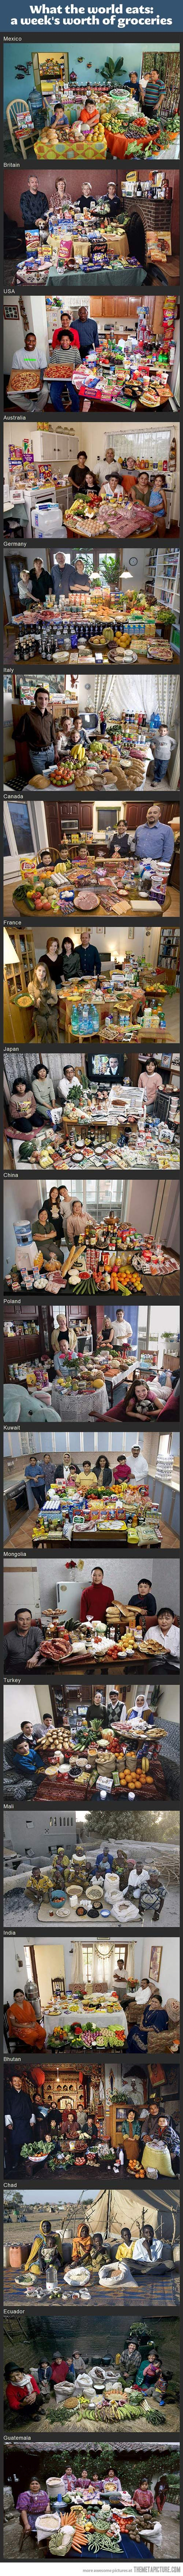 A week's worth of groceries around the world…